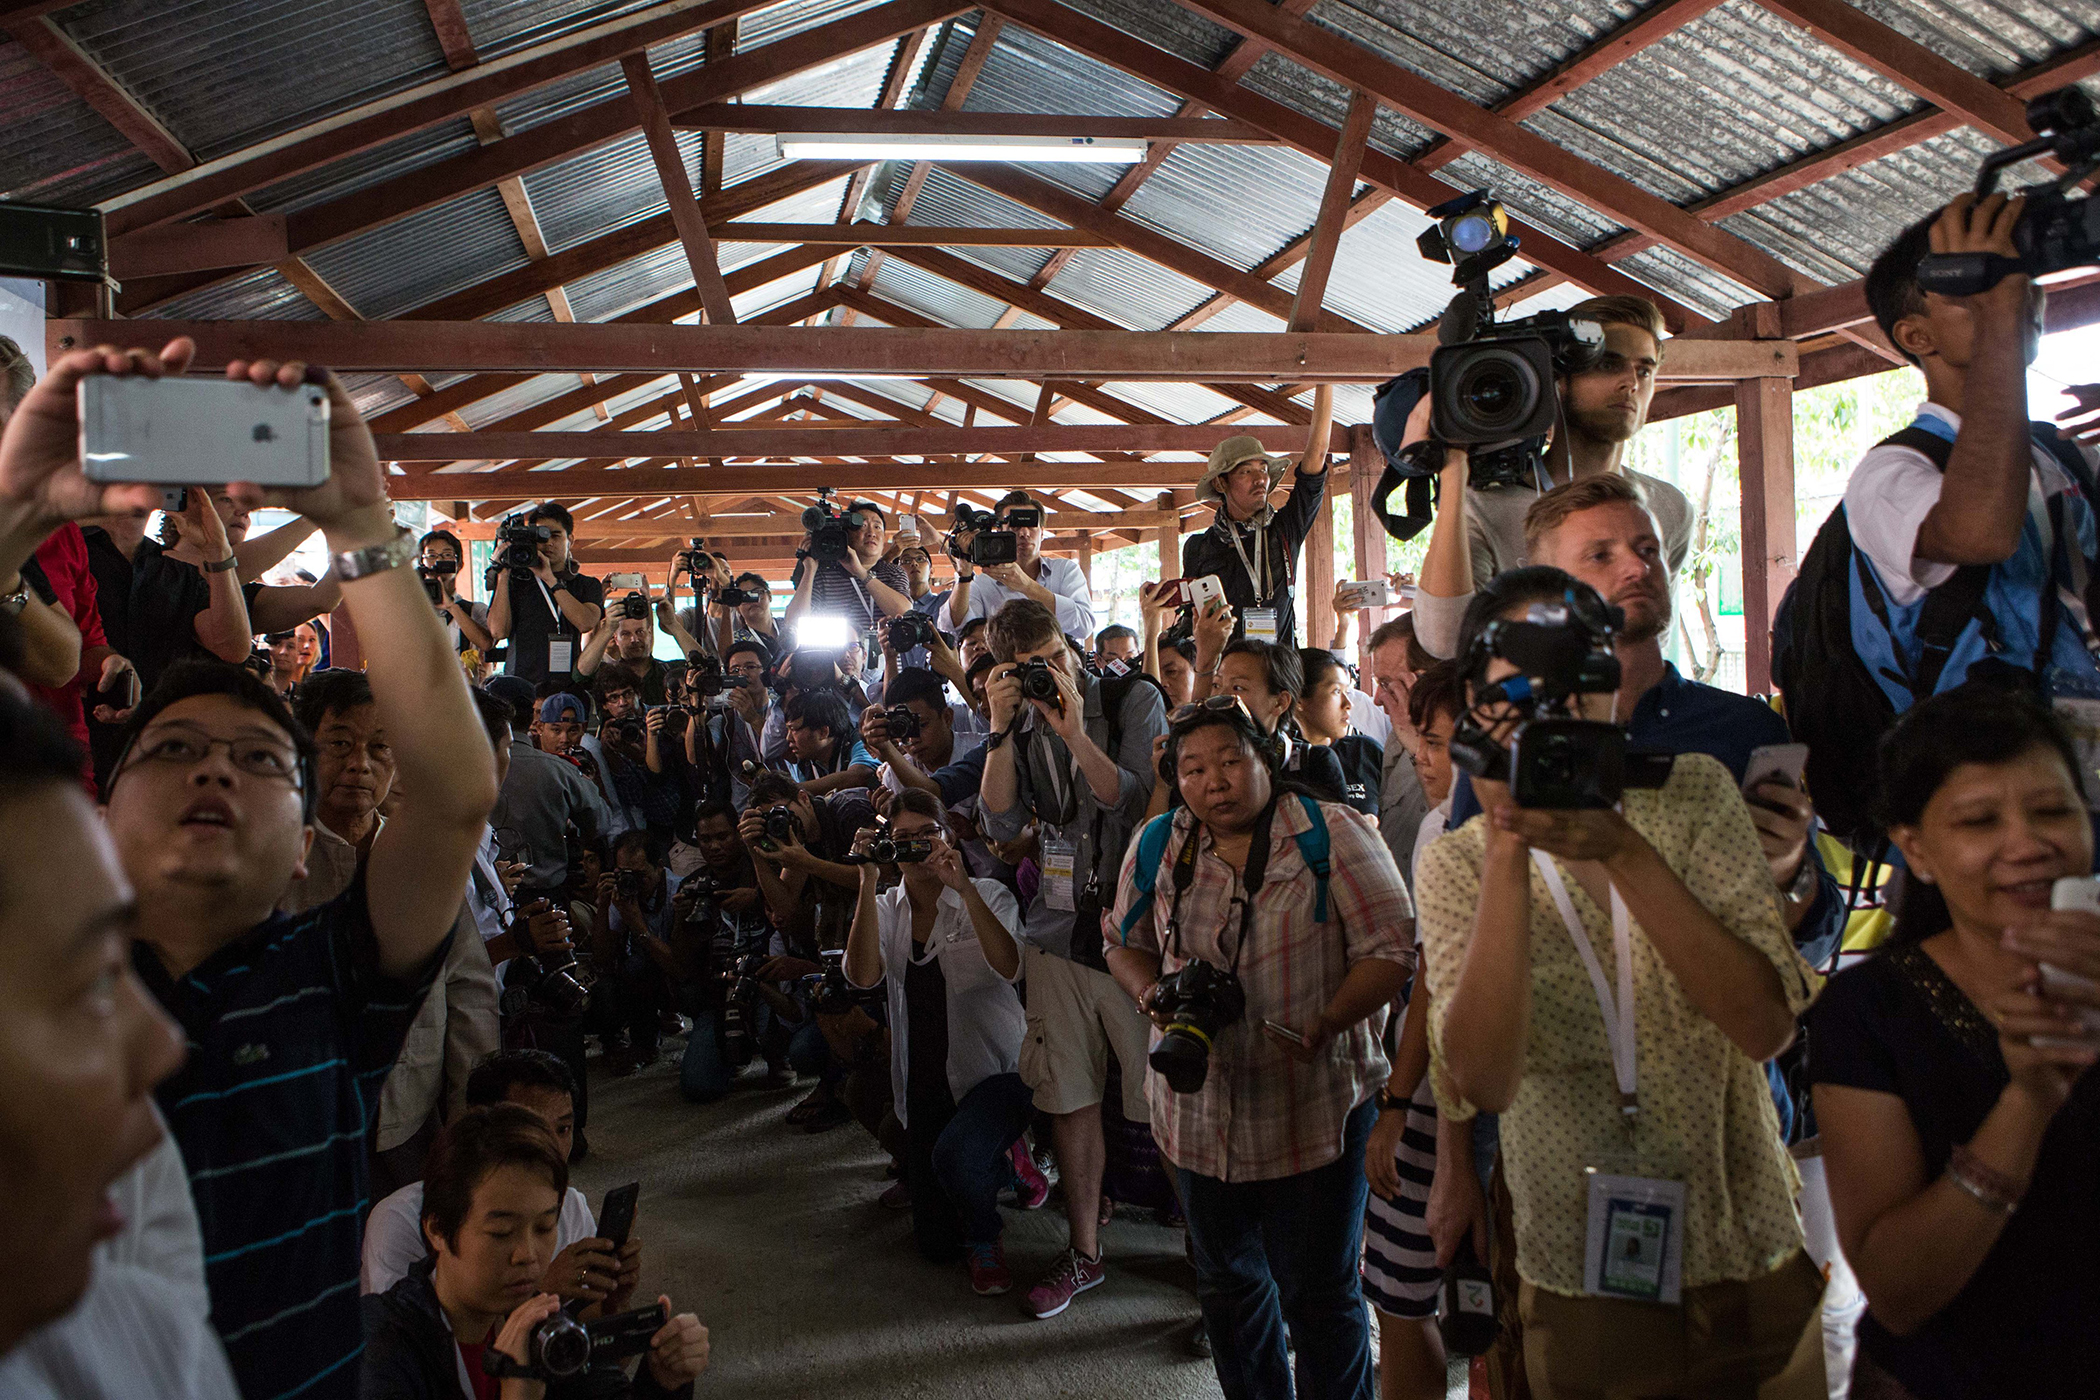 The media prepares as Aung San Suu Kyi, leader of Burma's National League for Democracy party, arrives at a polling station in Yangon, on Nov. 8, 2015.